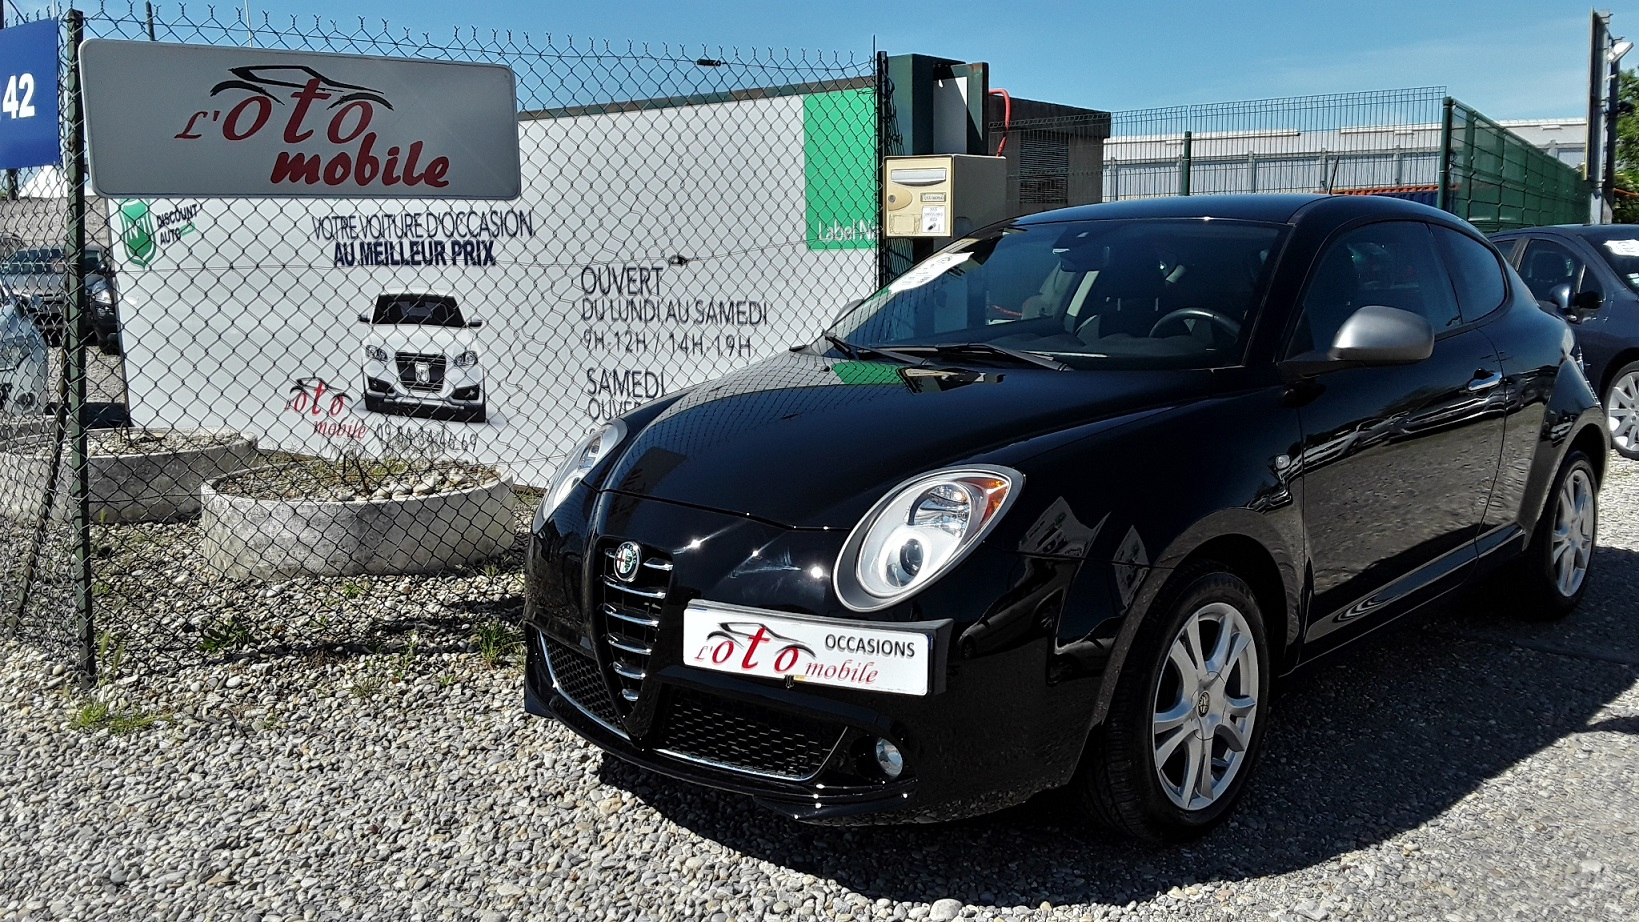 voiture alfa romeo mito 1 4 mpi multiair 105 distinctive occasion essence 2011 43550 km. Black Bedroom Furniture Sets. Home Design Ideas